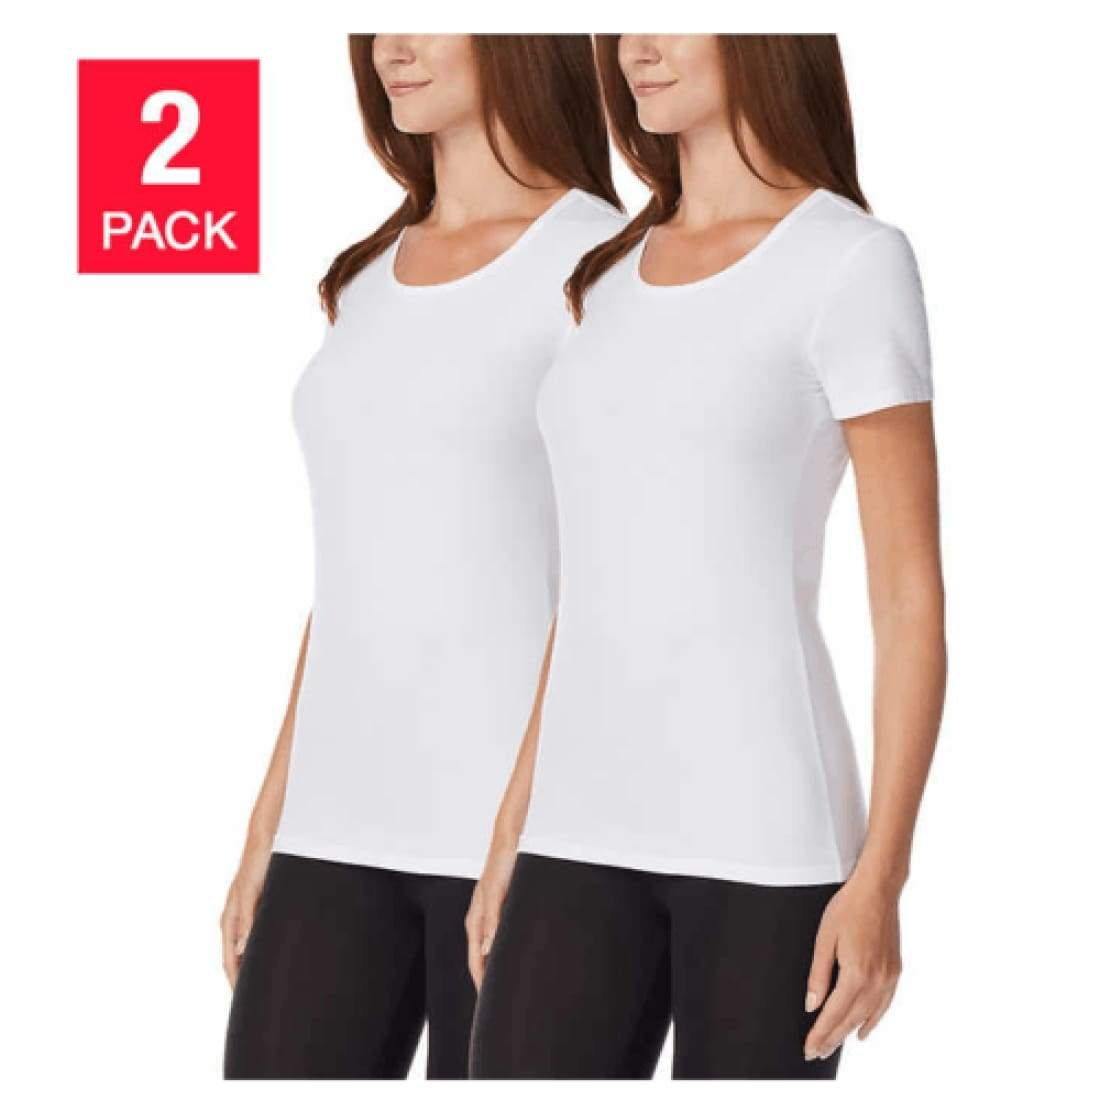 32 Degrees Cool Womens Short Sleeve Scoop Neck Tee 2 Pack (White) S Tops & Blouses